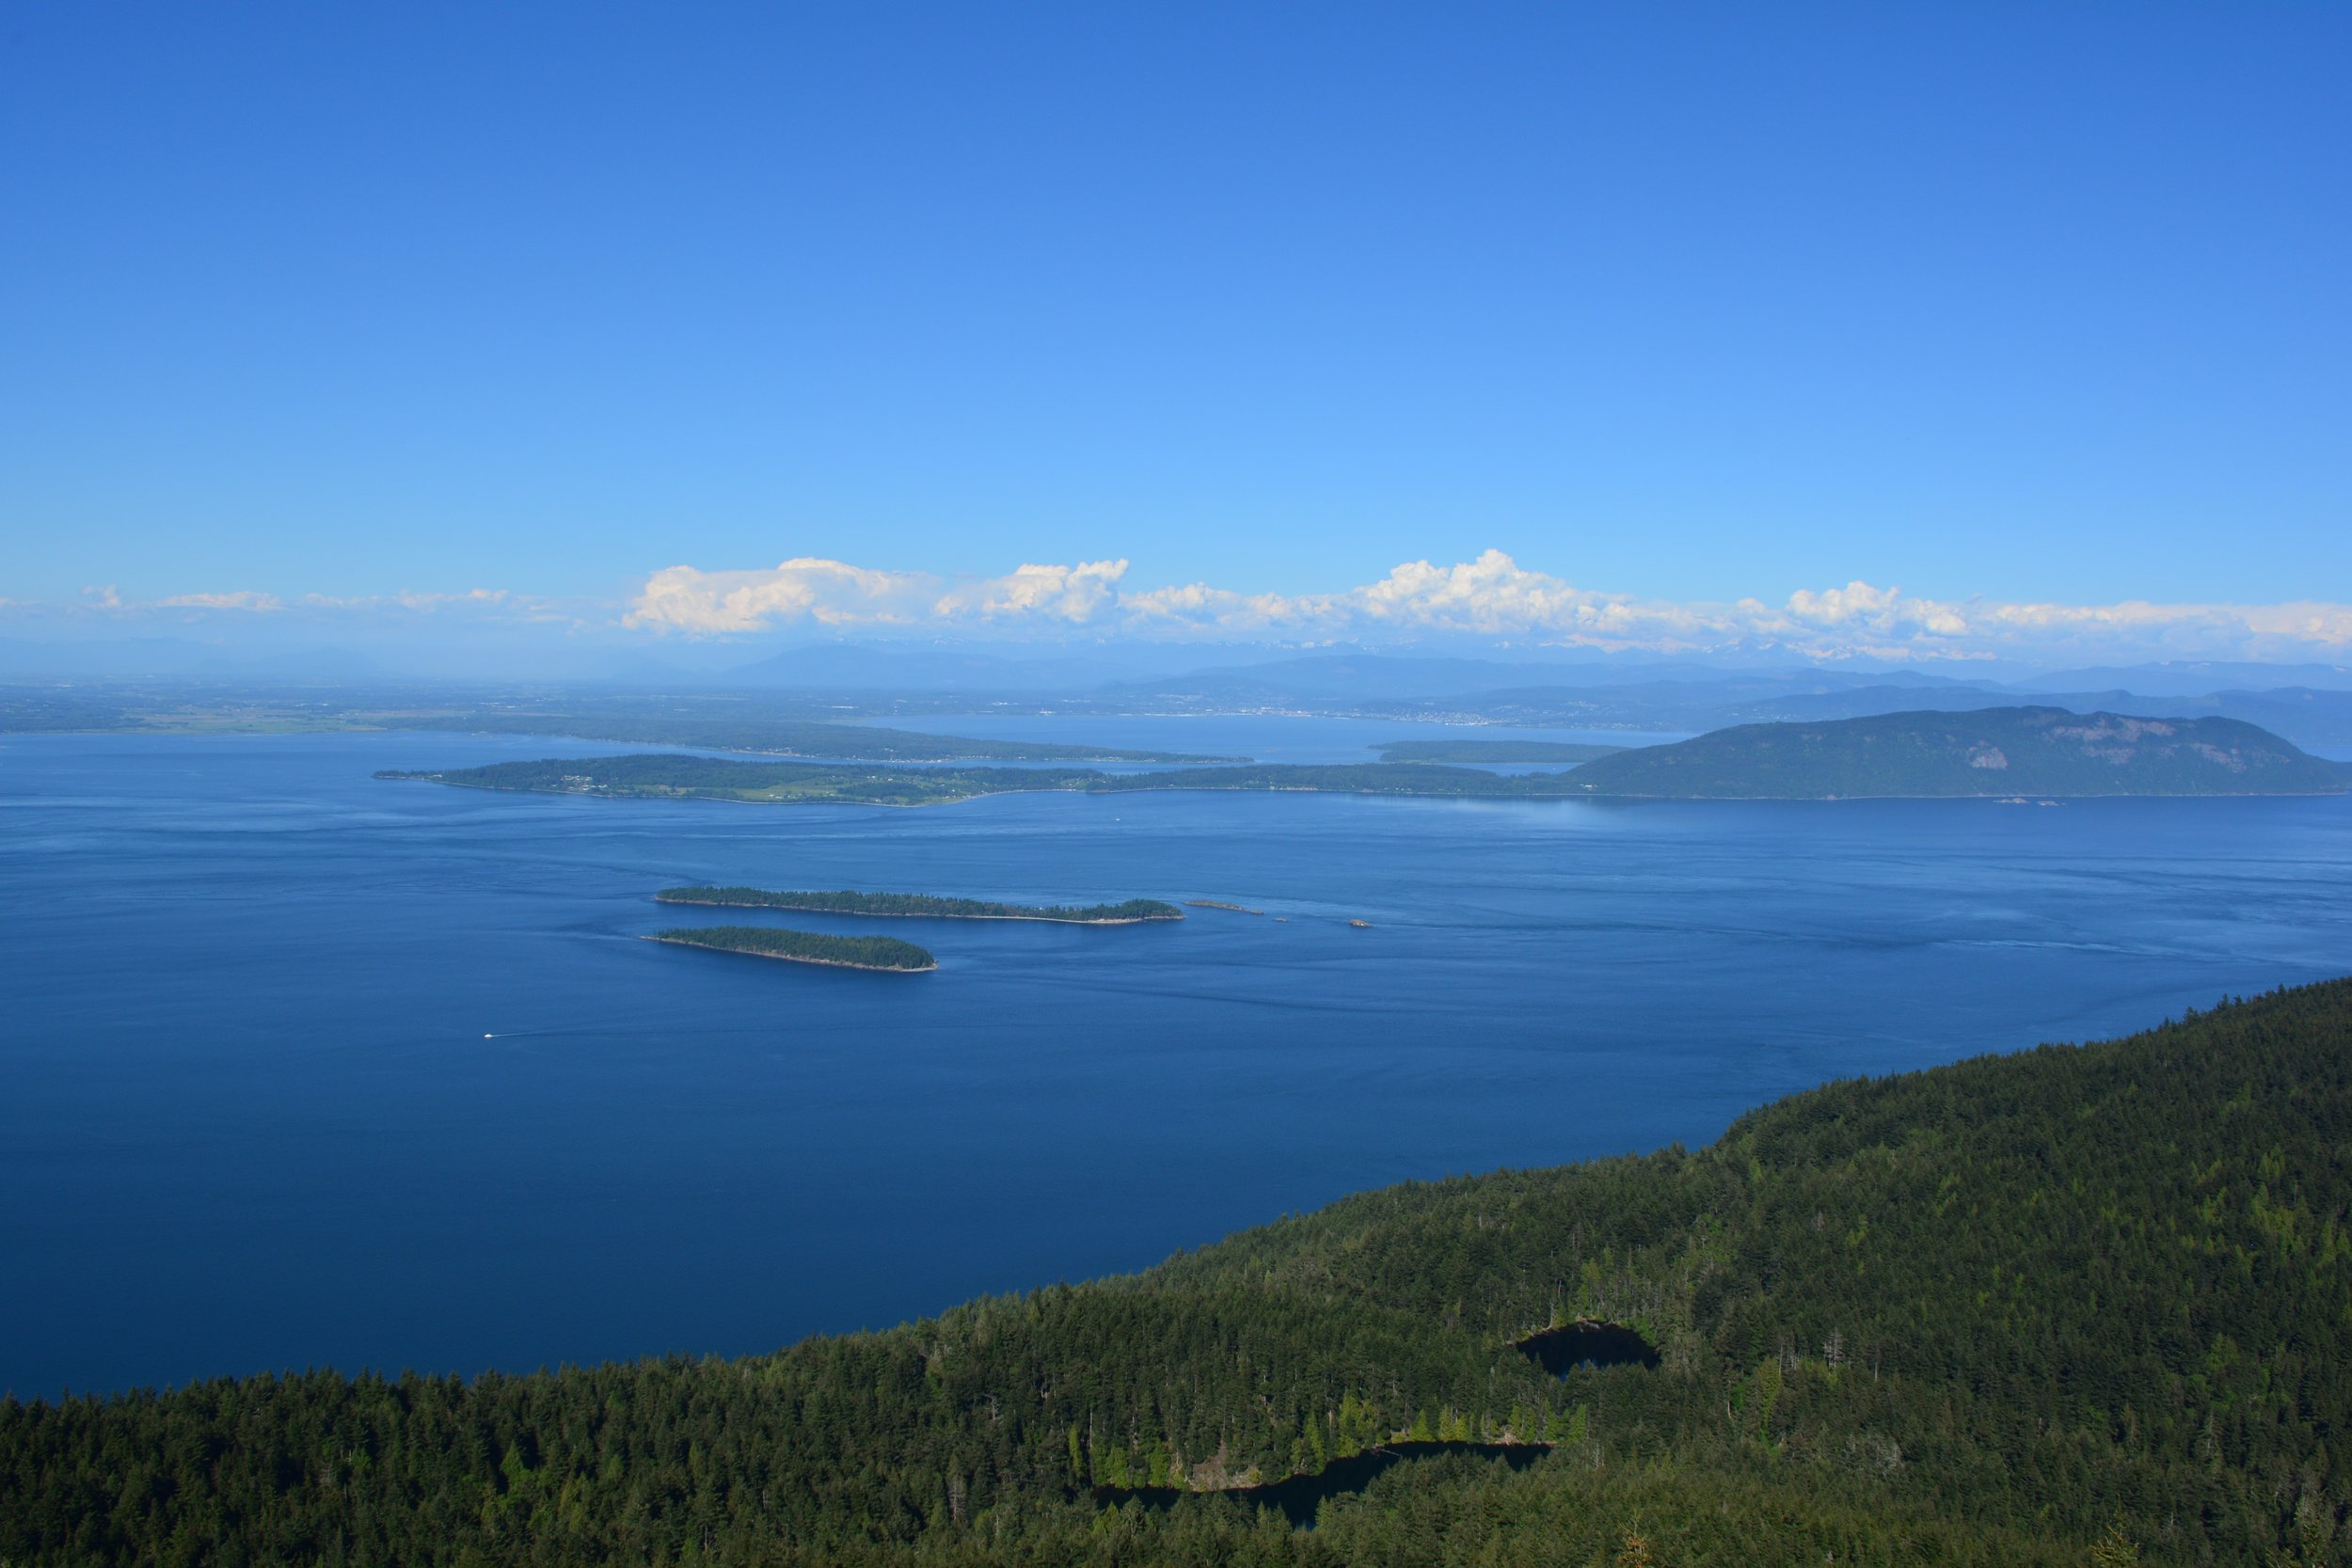 Mount Constitution - One of the main draws on Orcas Island, the view from the summit of Mount Constitution does not disappoint.